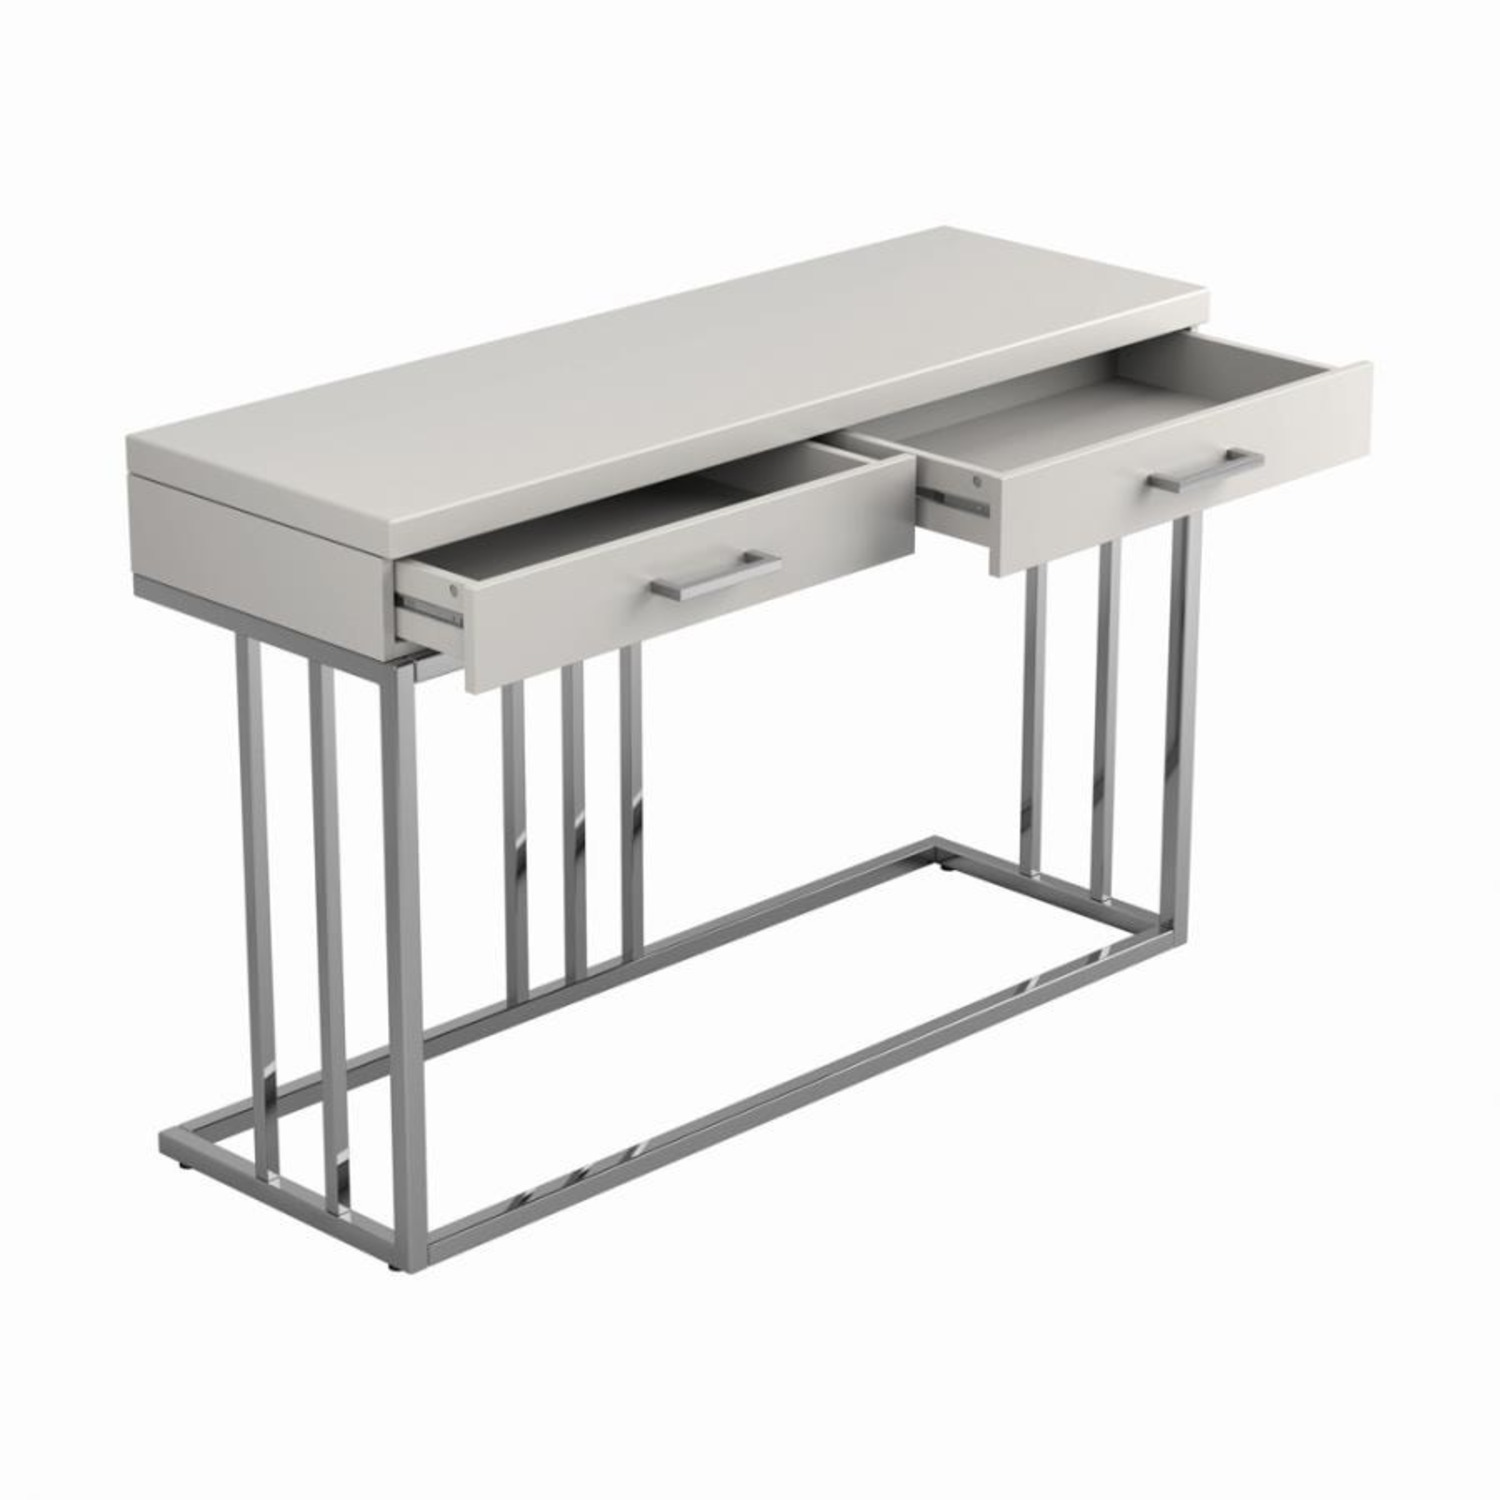 Sofa Table In Modern Linear Design - image-1